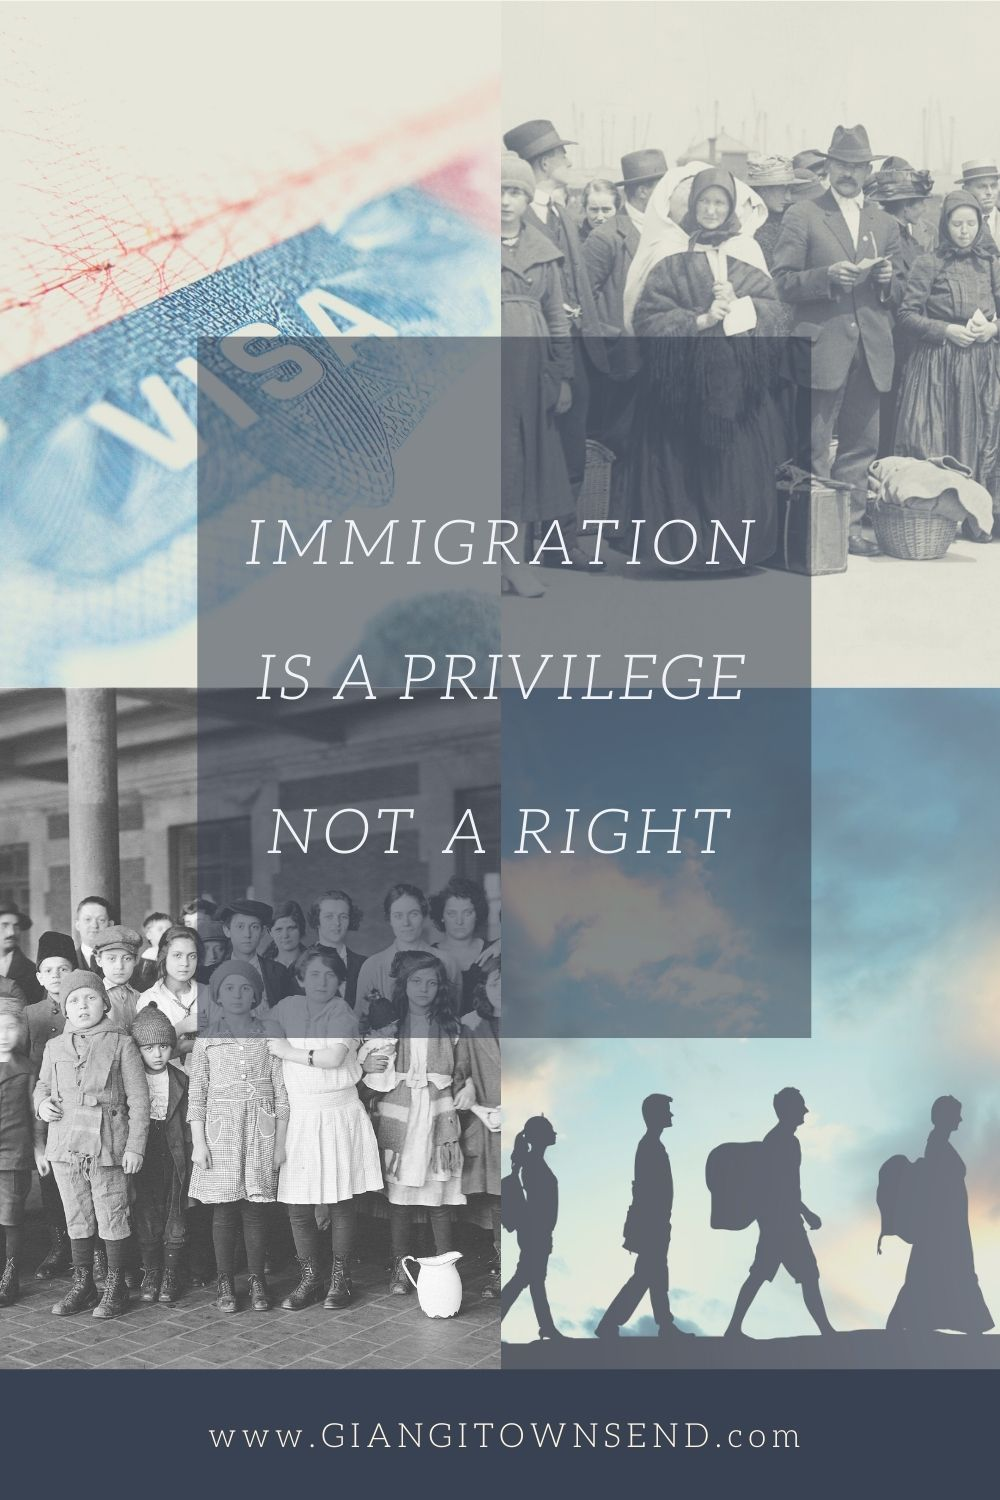 Immigration is a privilege, not a right.